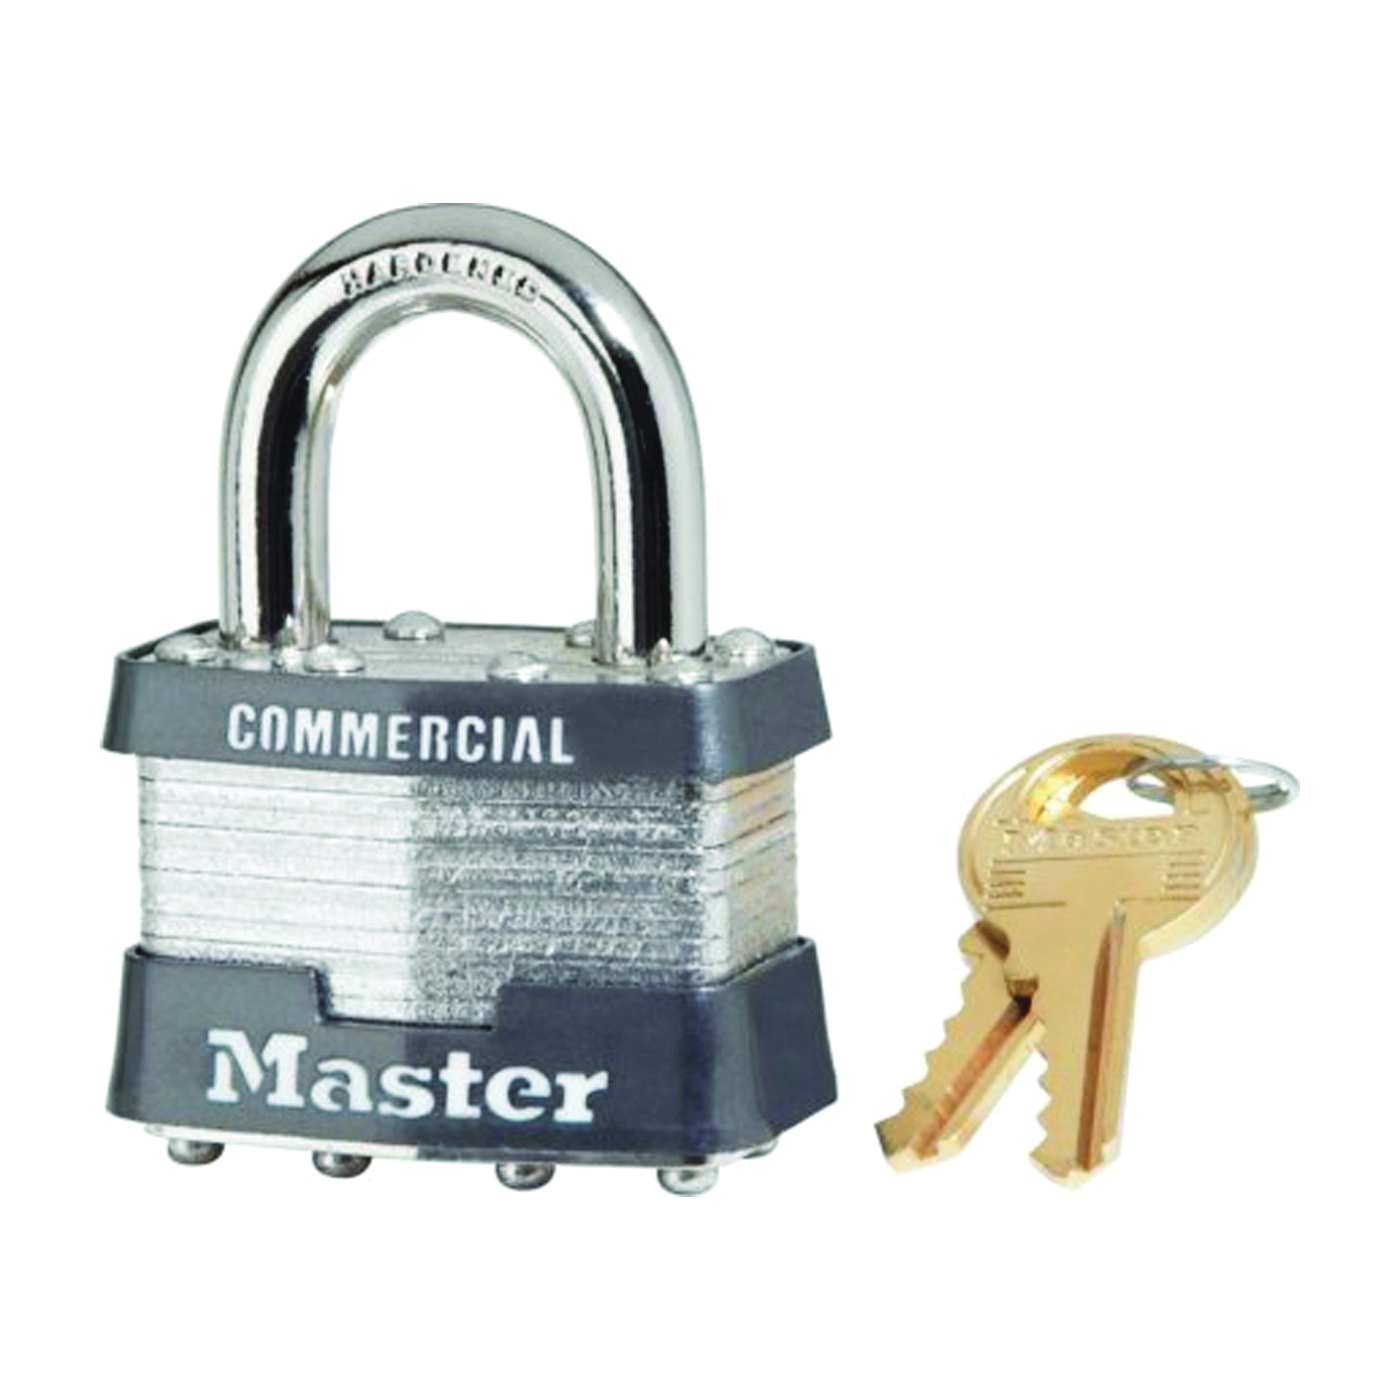 Picture of Master Lock 1KA 2002 Keyed Padlock, Alike Key, Open Shackle, 5/16 in Dia Shackle, 15/16 in H Shackle, Steel Shackle